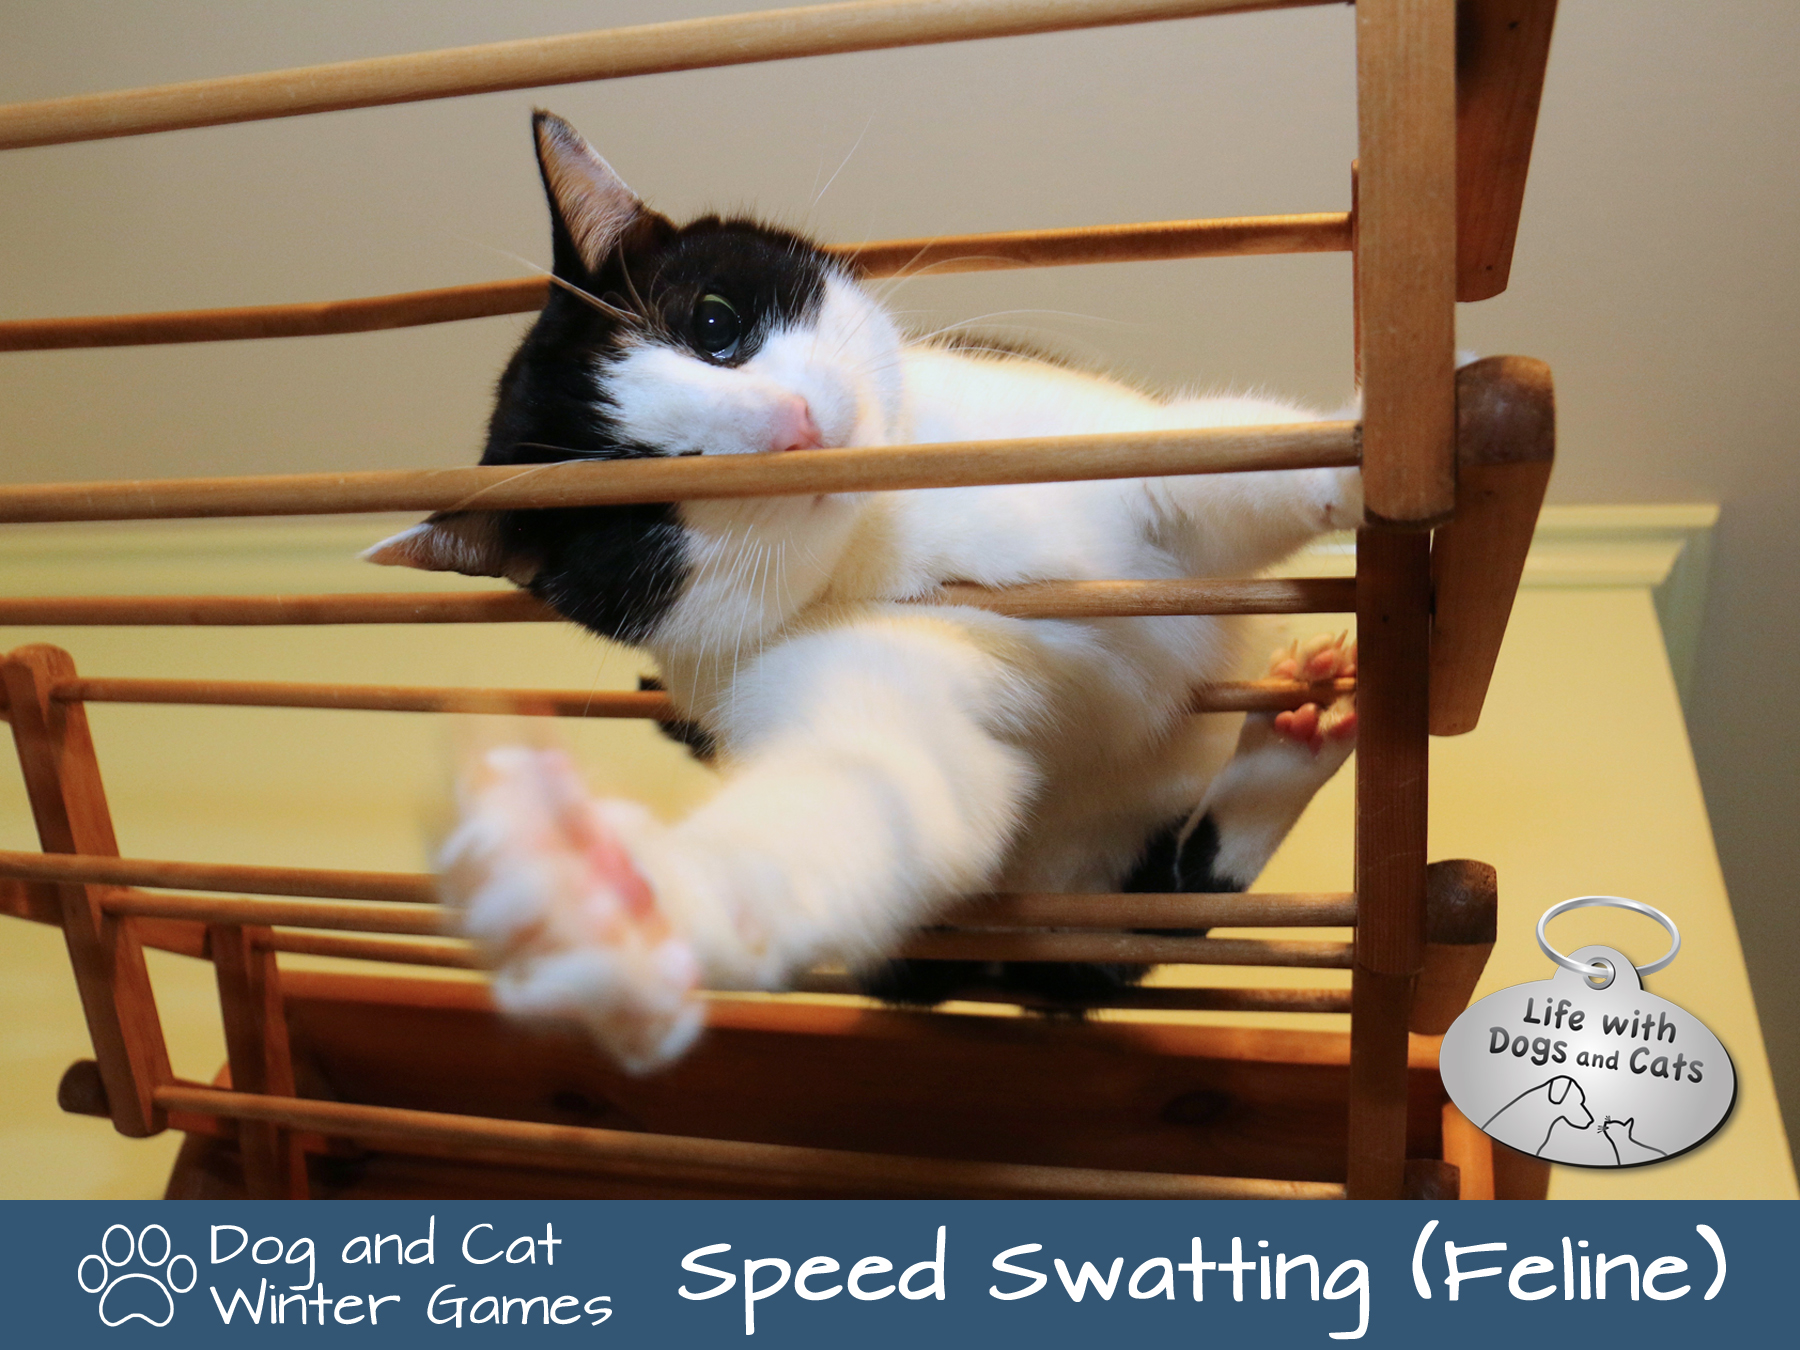 Dog and Cat Winter Games: Speed Swatting